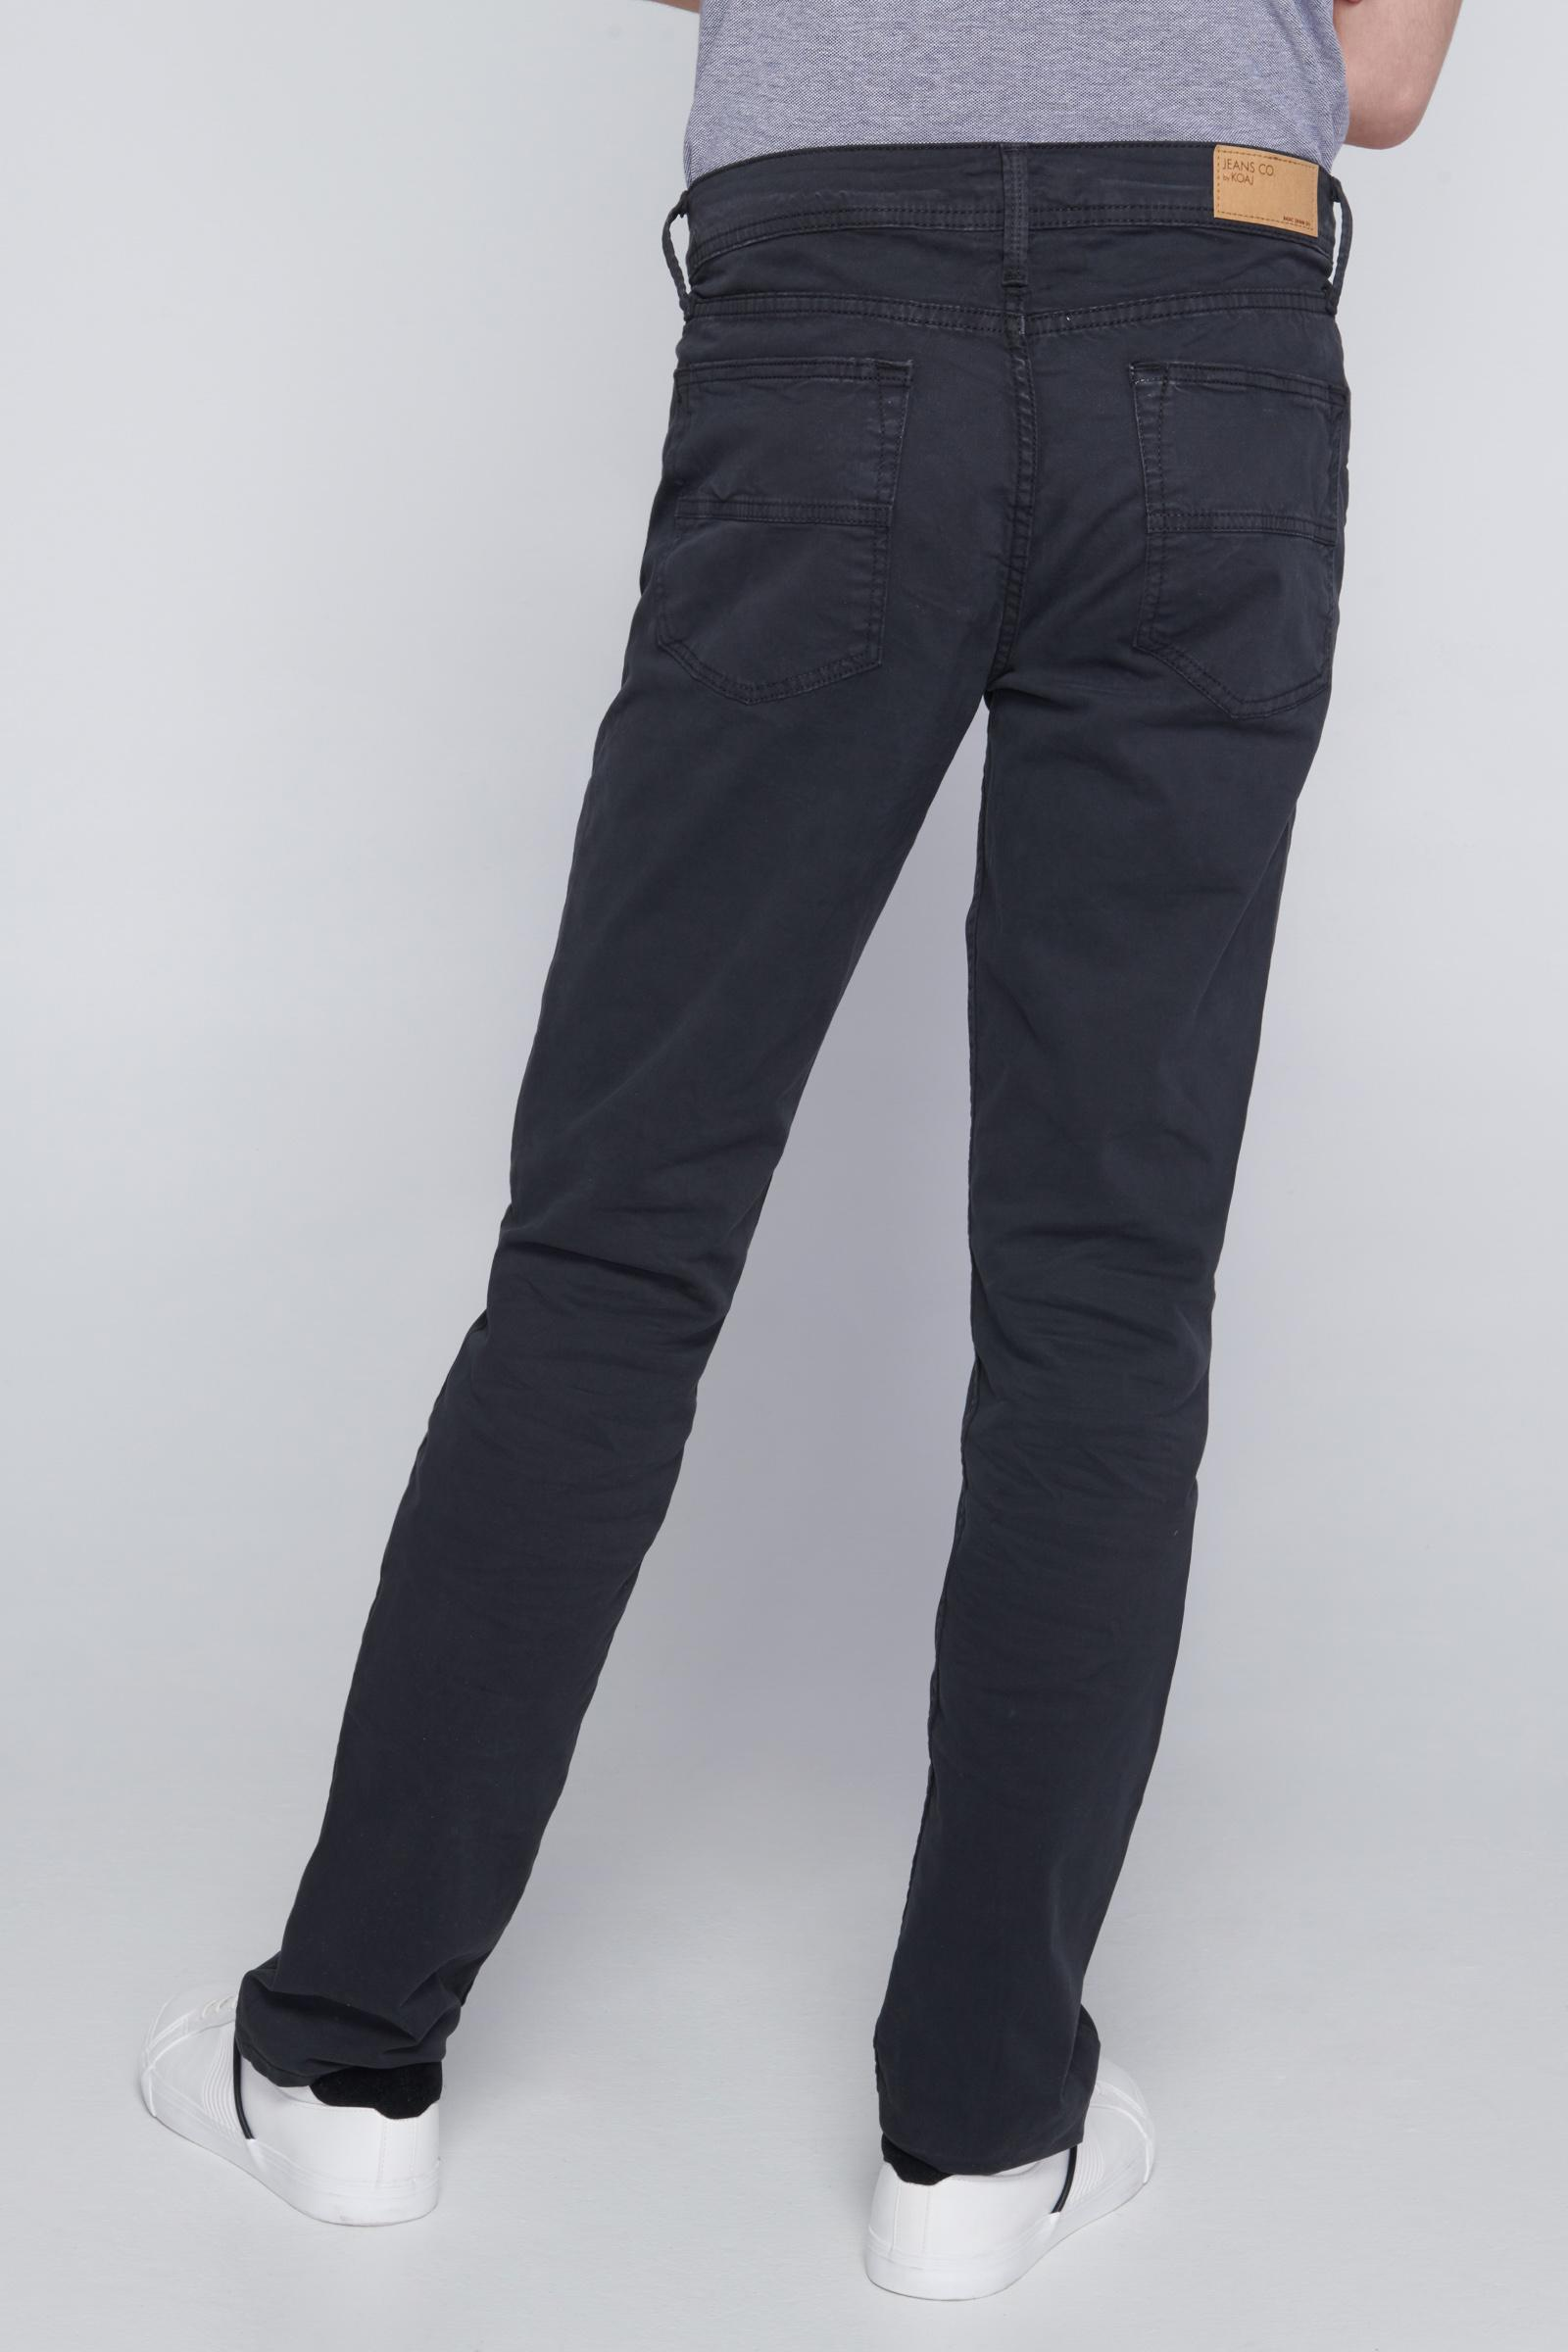 KOAJ-PANTALON KOAJ DRILL 5 BOL STRETCH 9 3/18